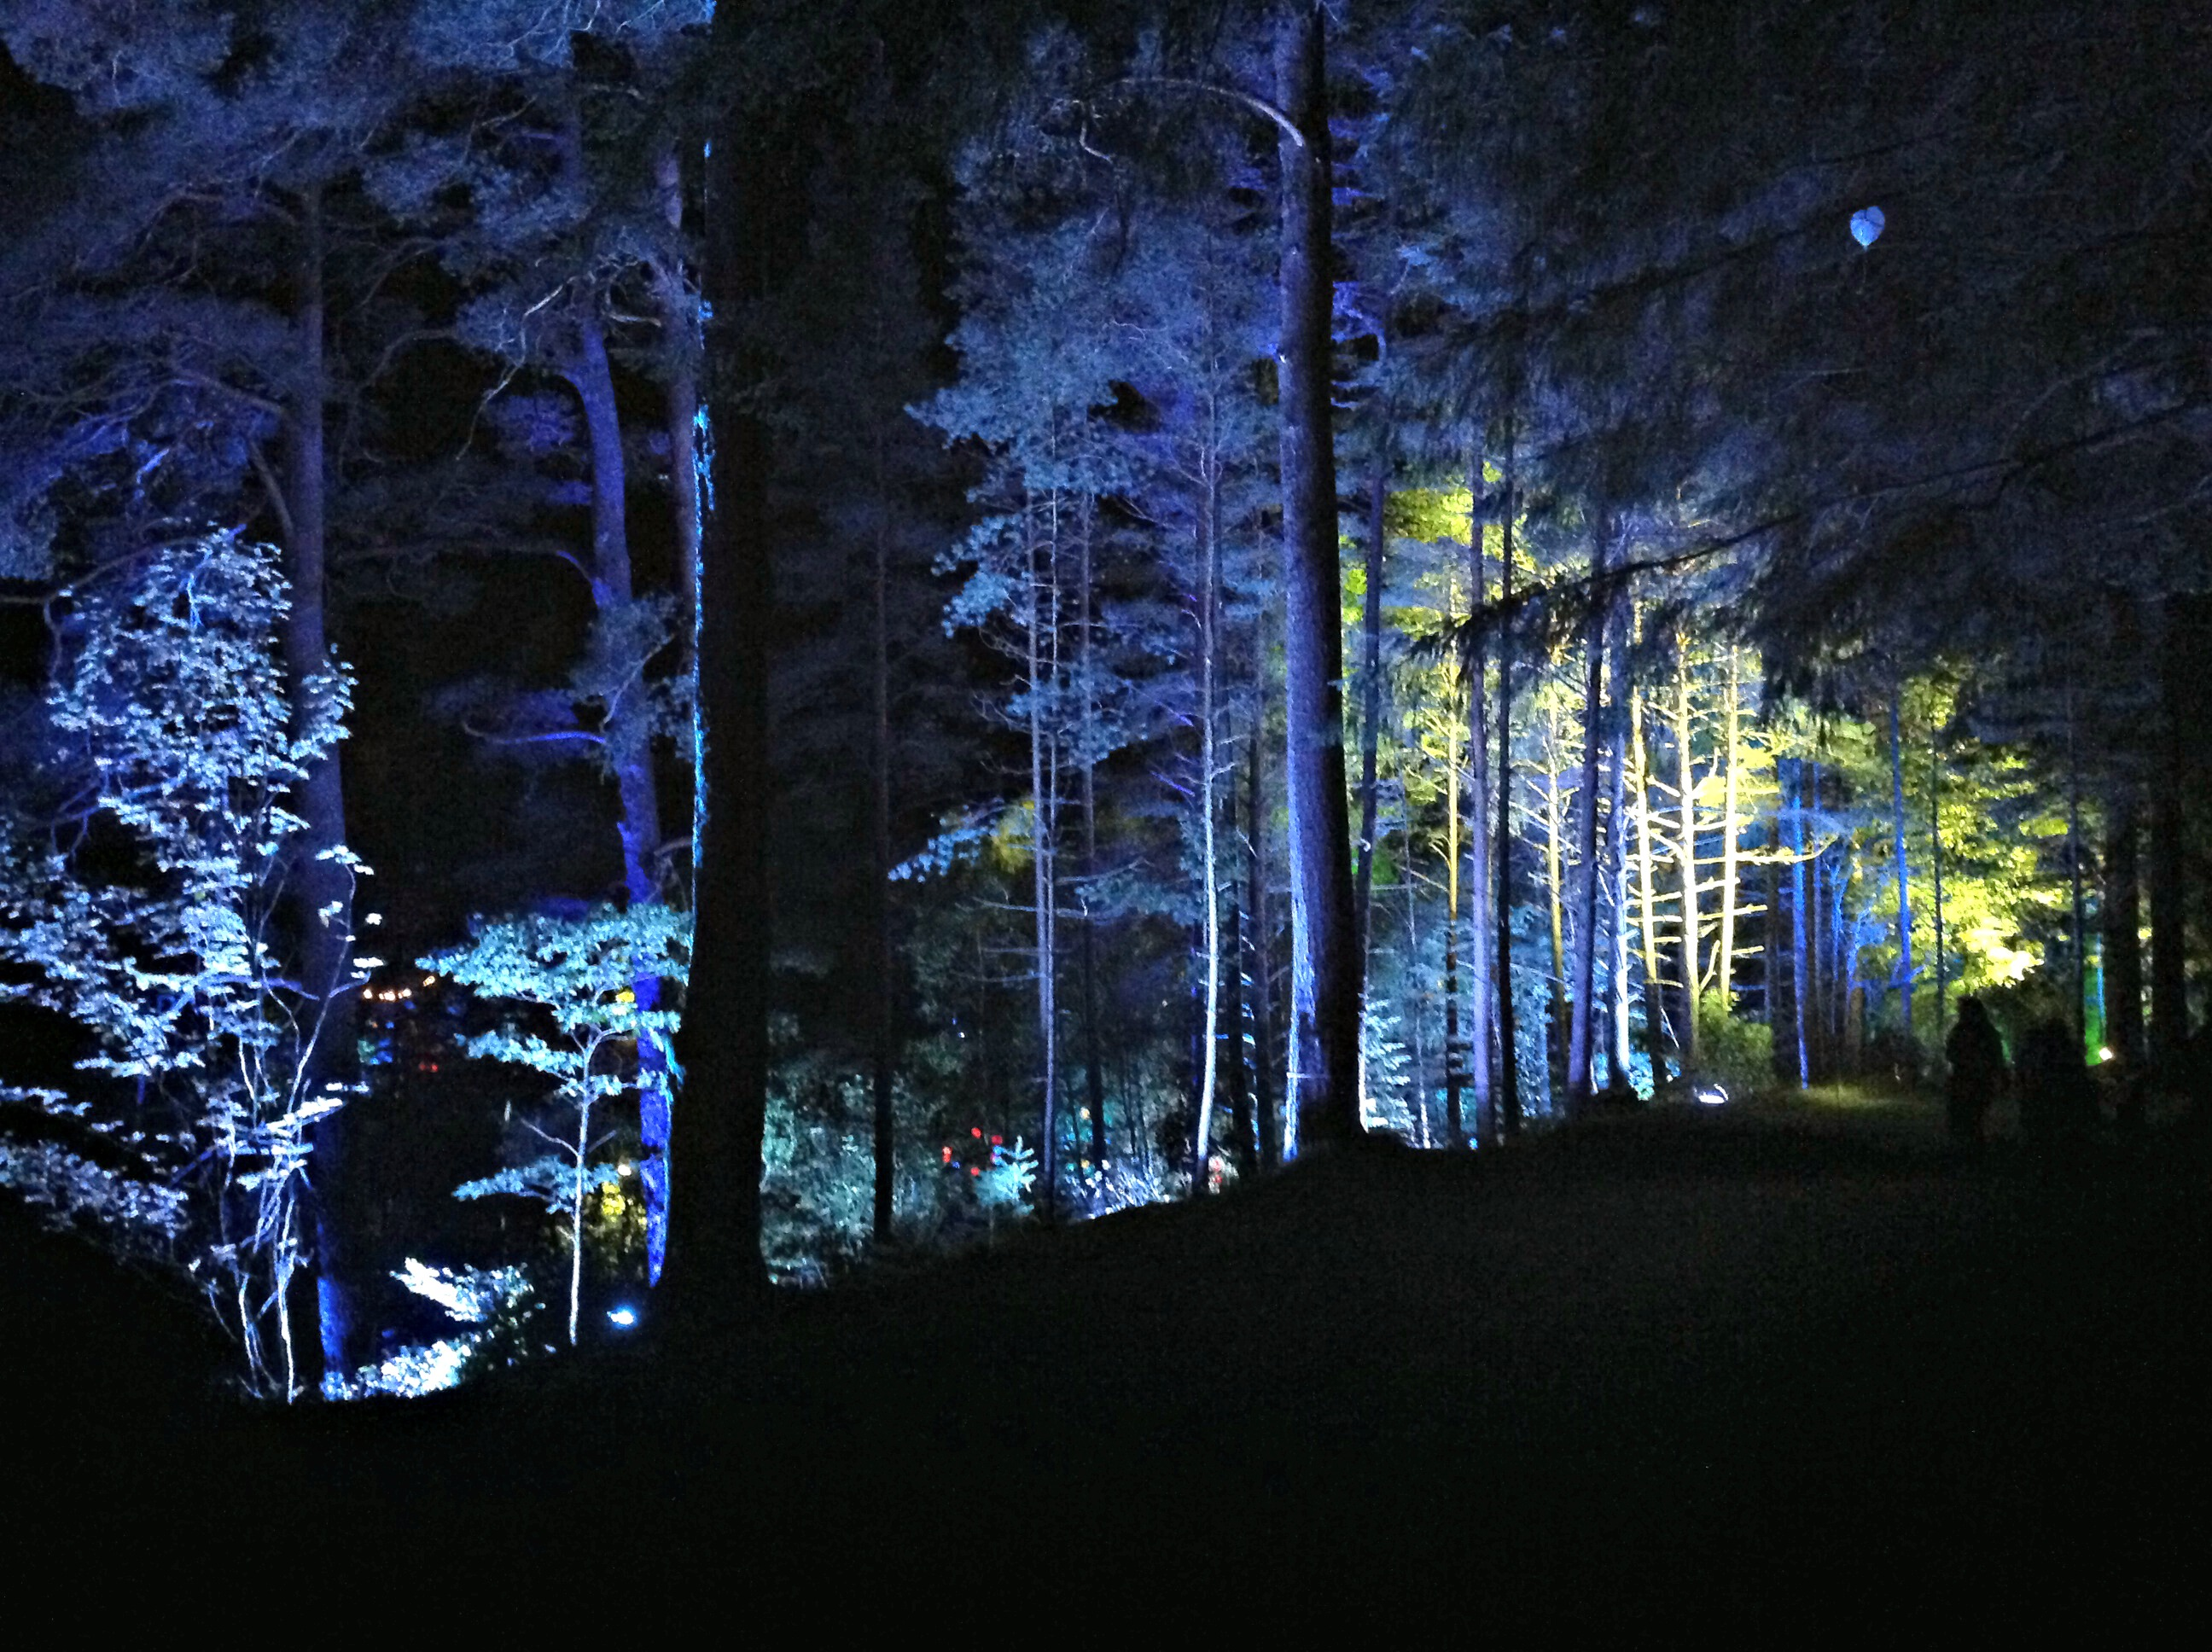 The Enchanted Forest, Faskally Woods, Pitlochry